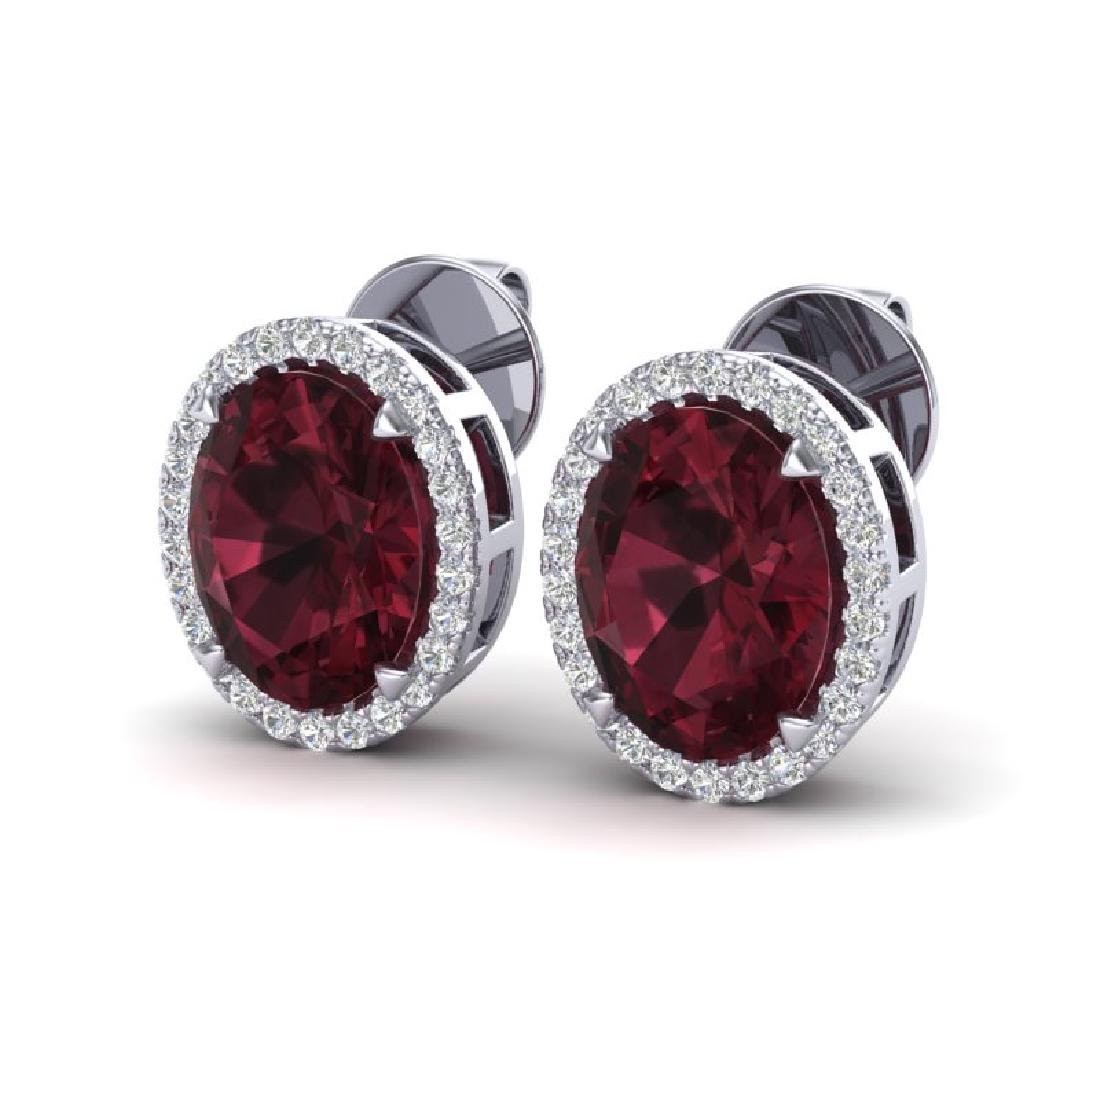 5.50 CTW Garnet & Micro VS/SI Diamond Halo Earrings 18K